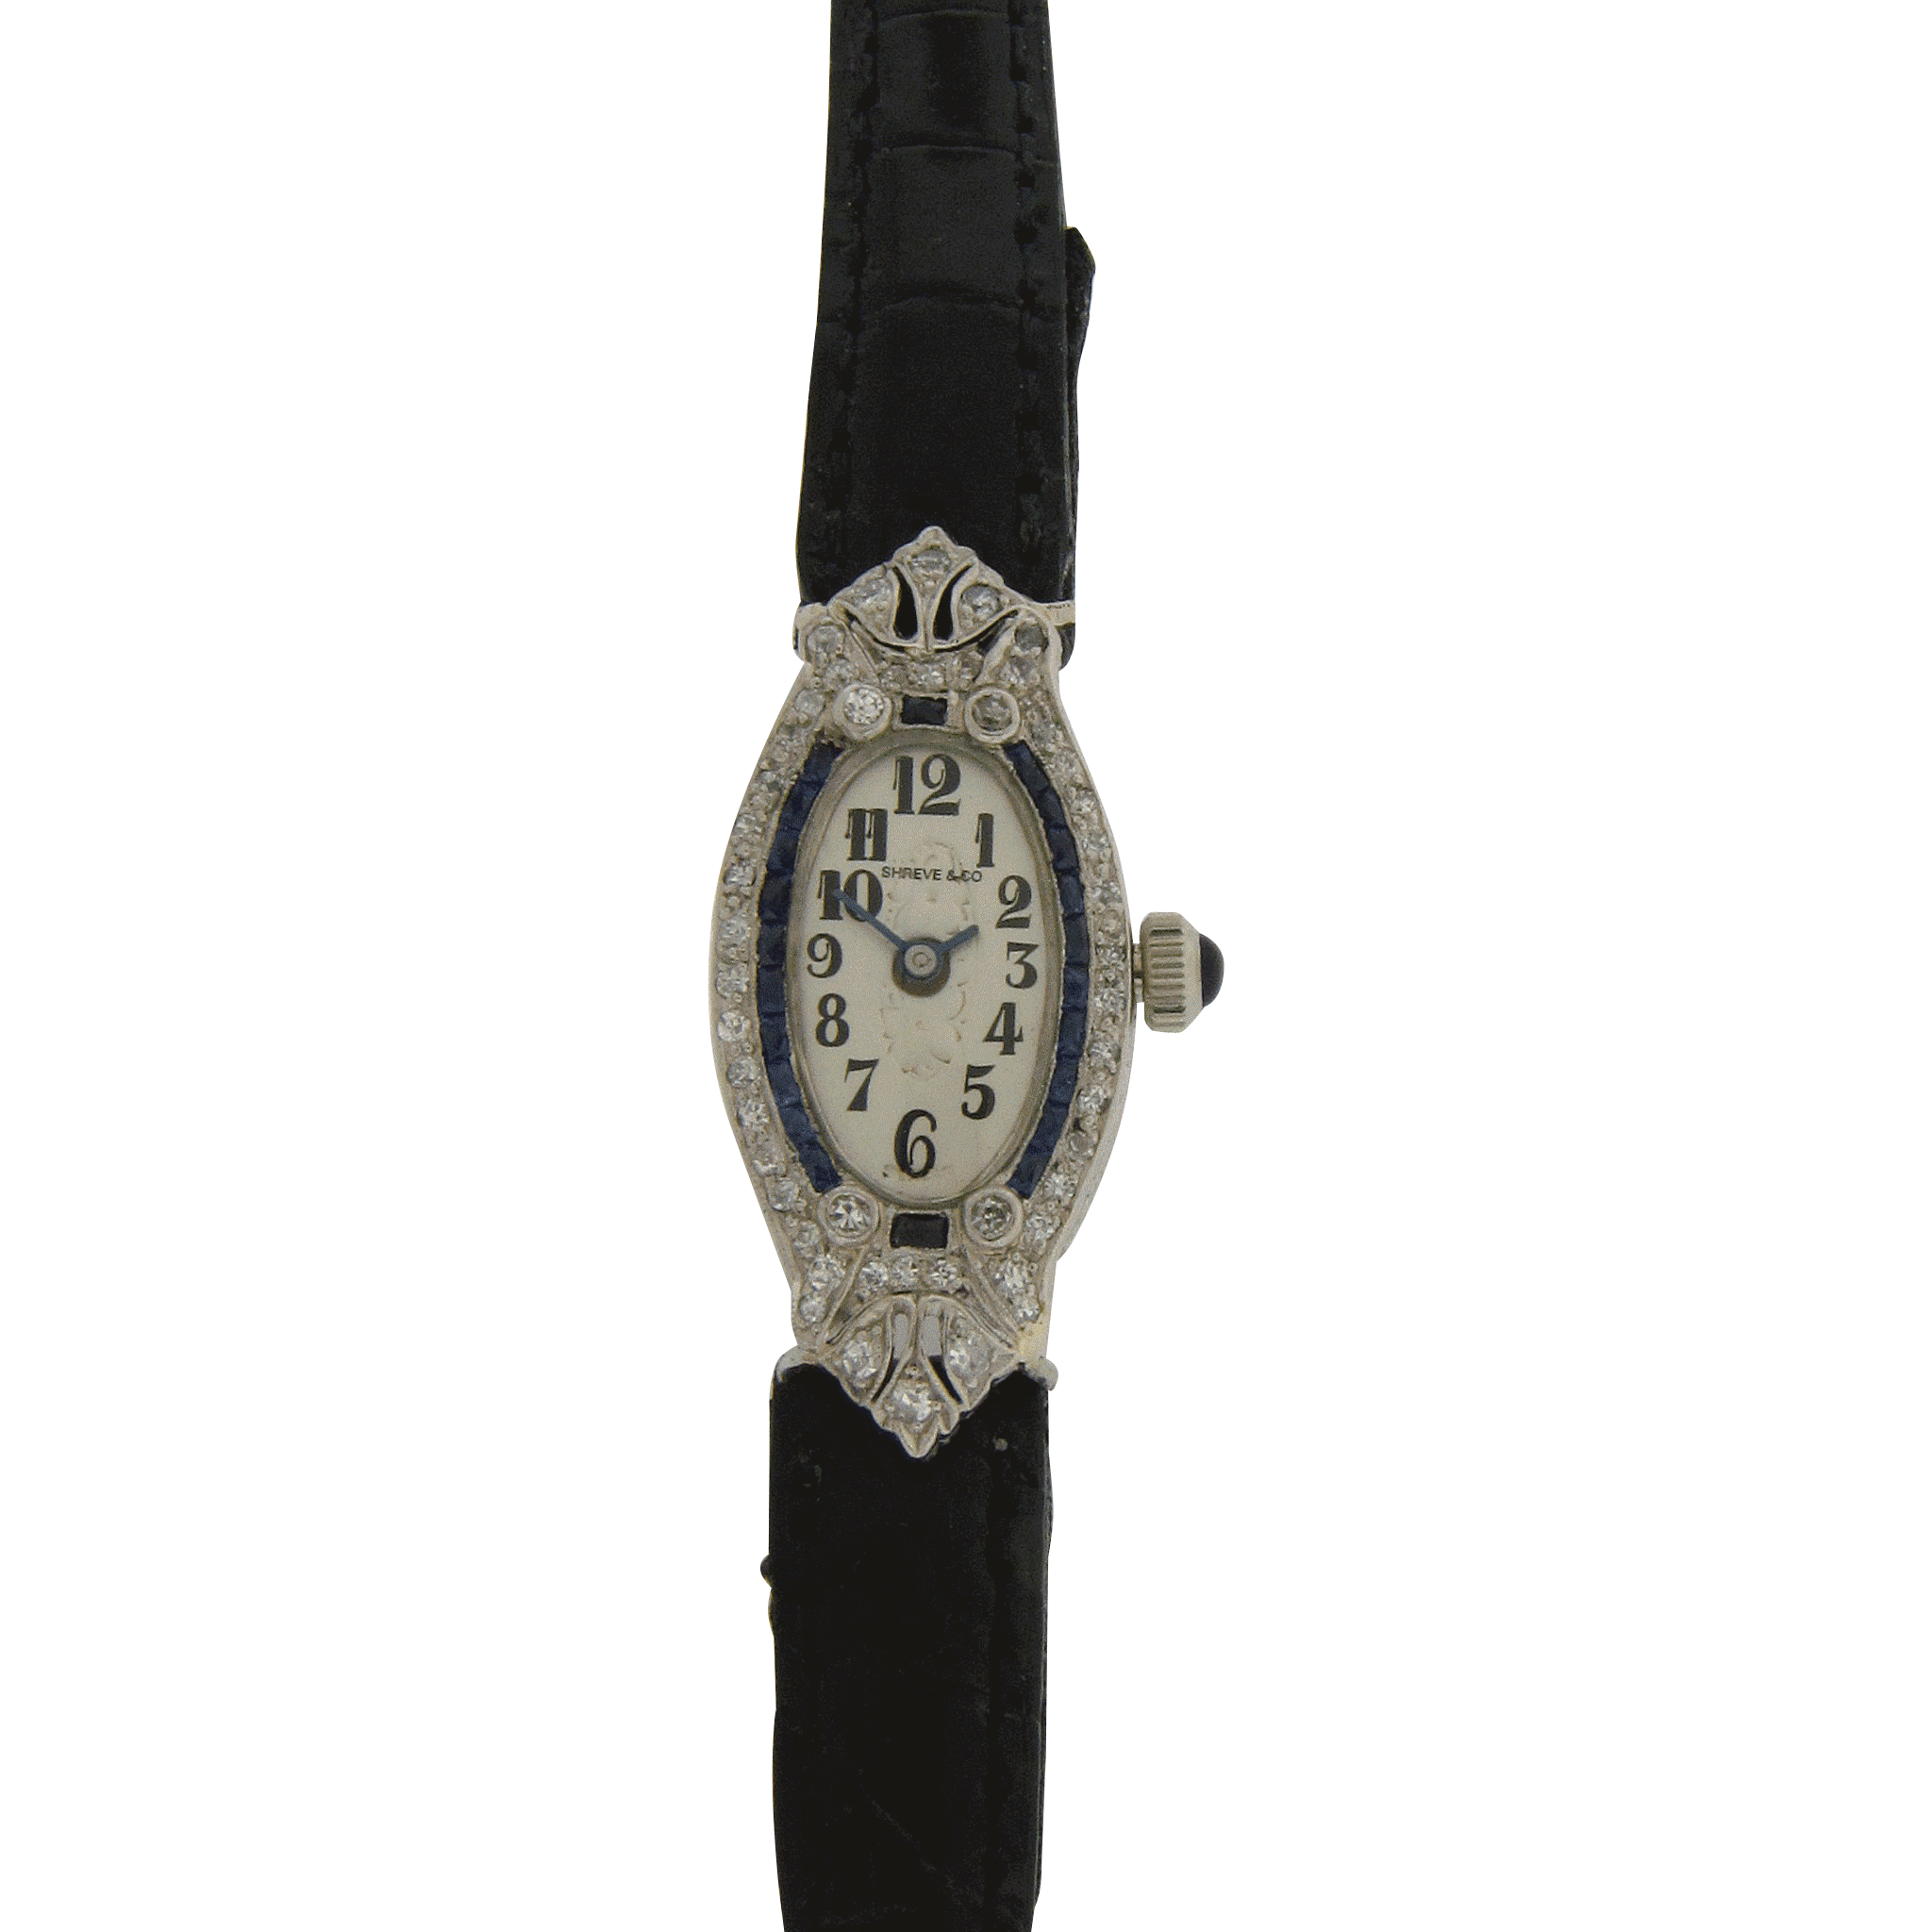 Ladies Diamond and Sapphire Wrist Watch by Shreve & Co